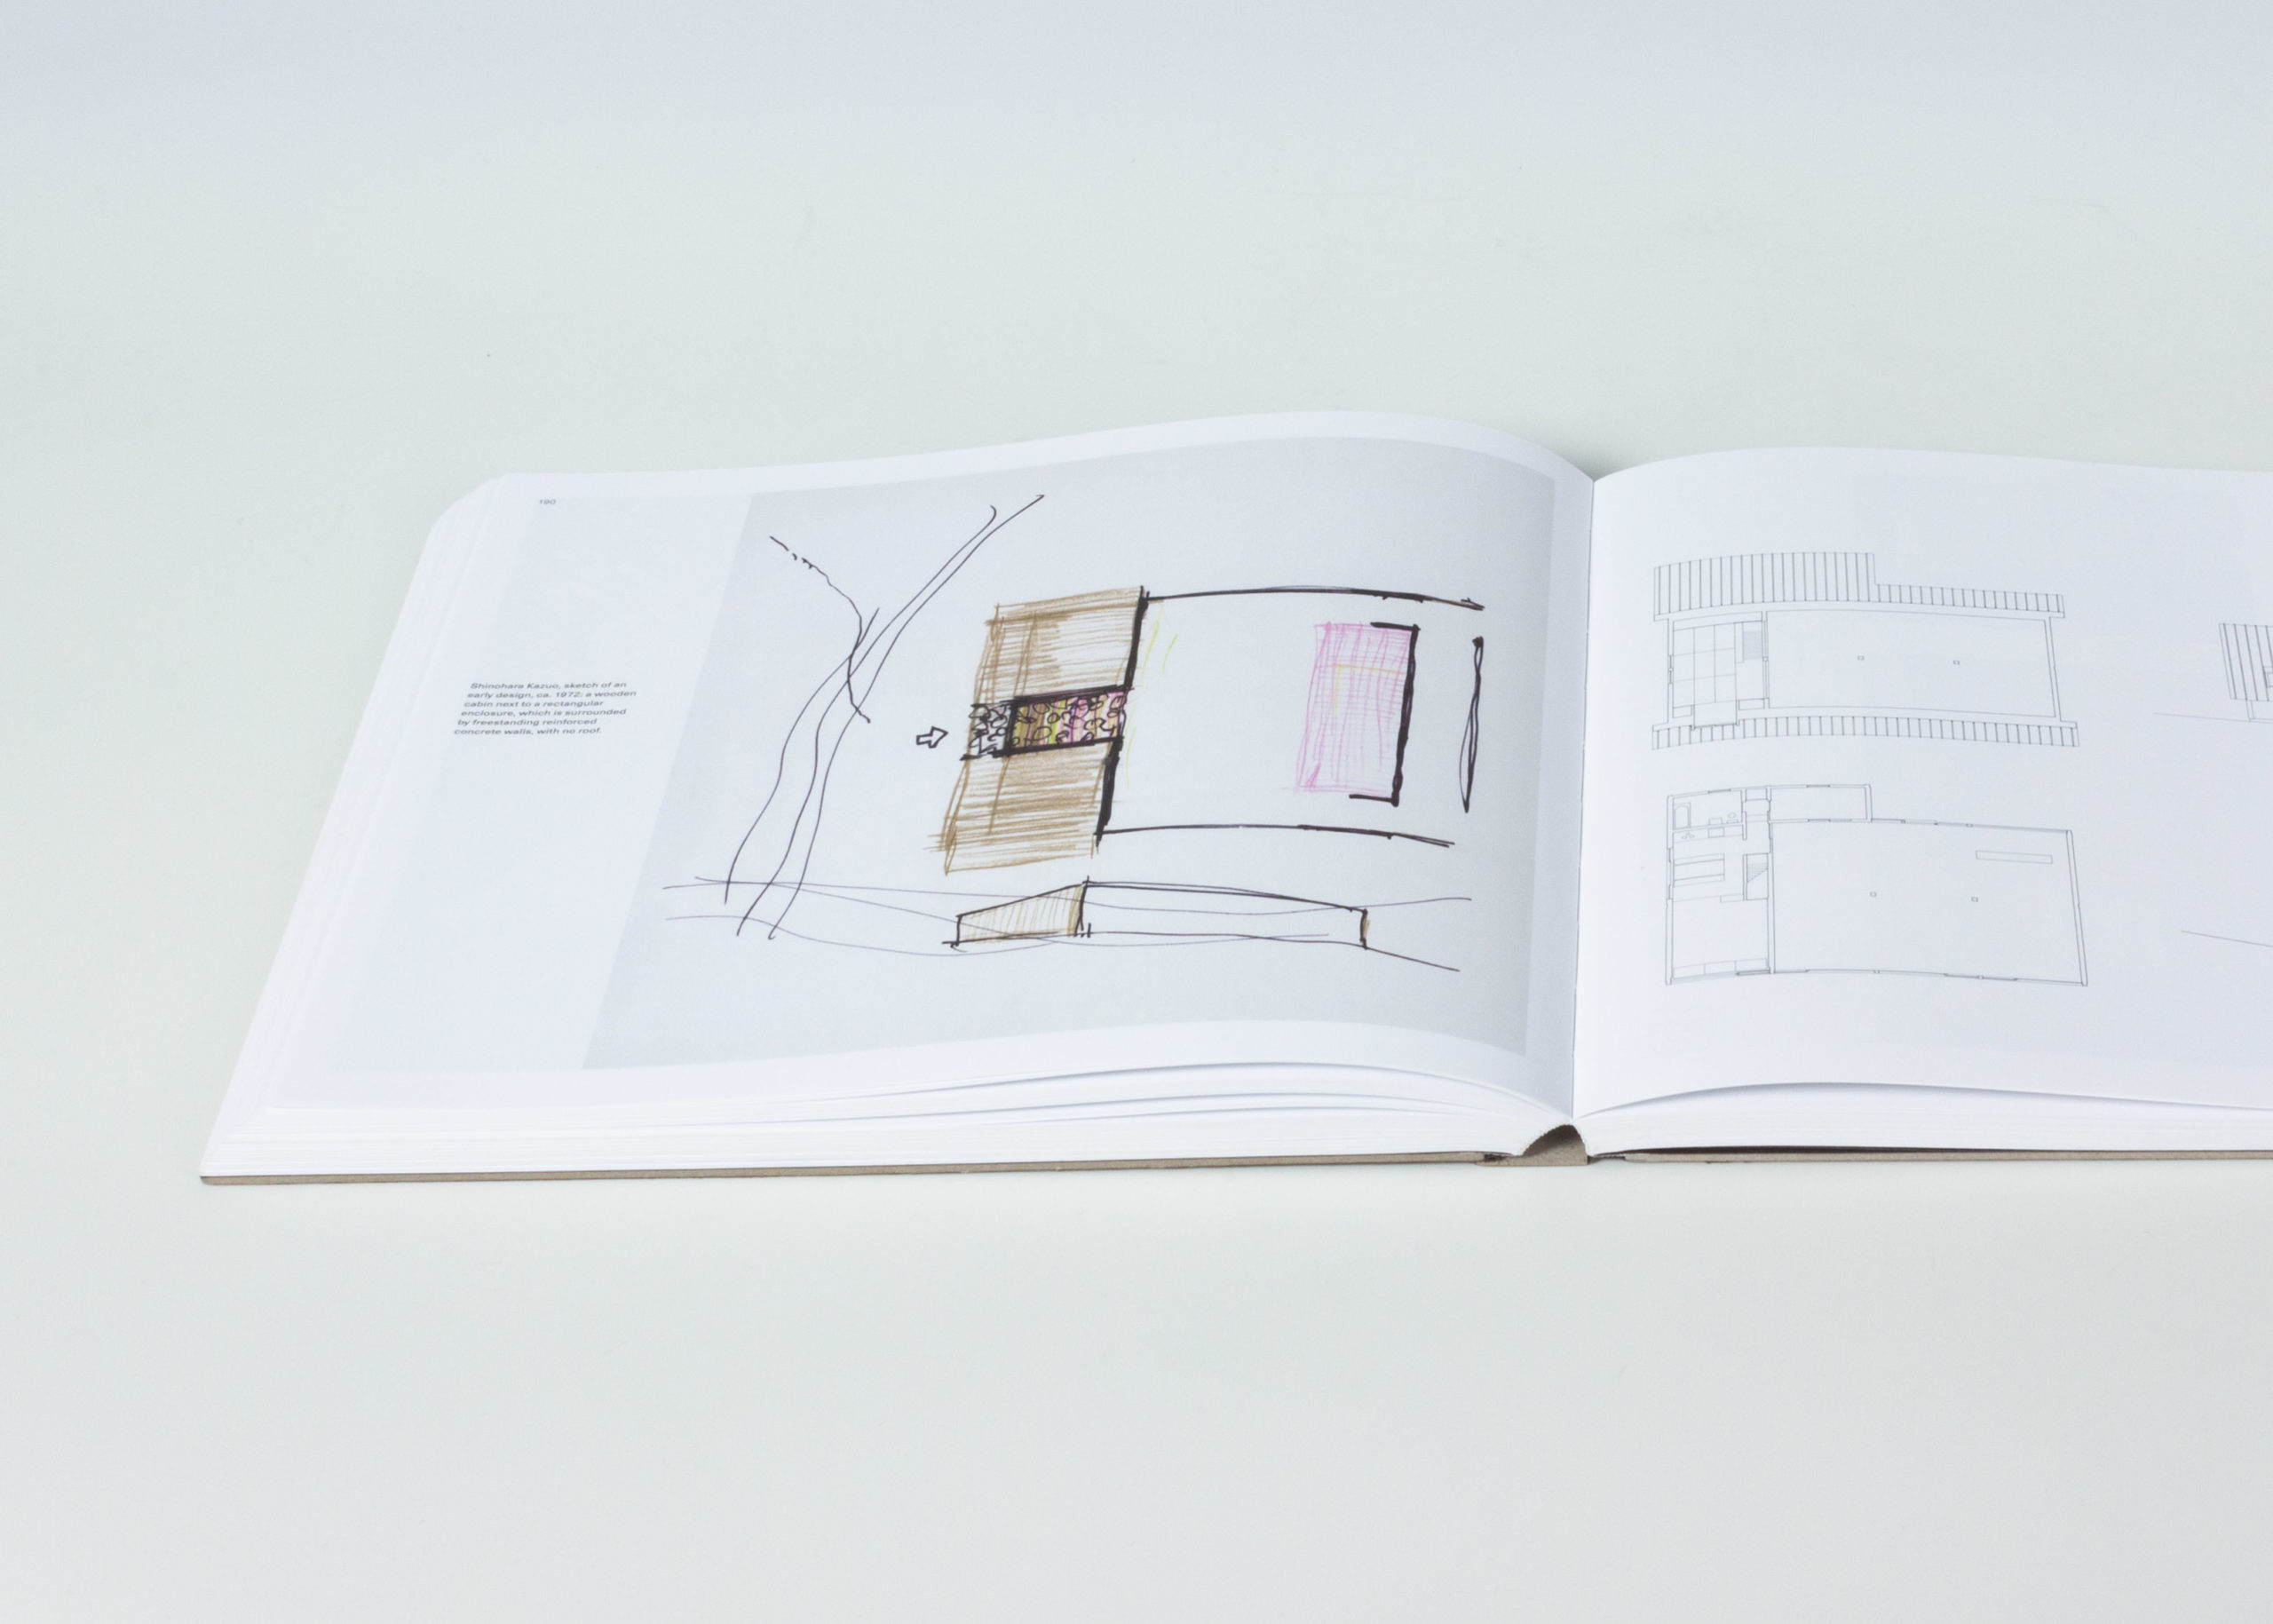 Interior of Kazuo Shinohara: Traversing the House and the City showing drawings and photographs